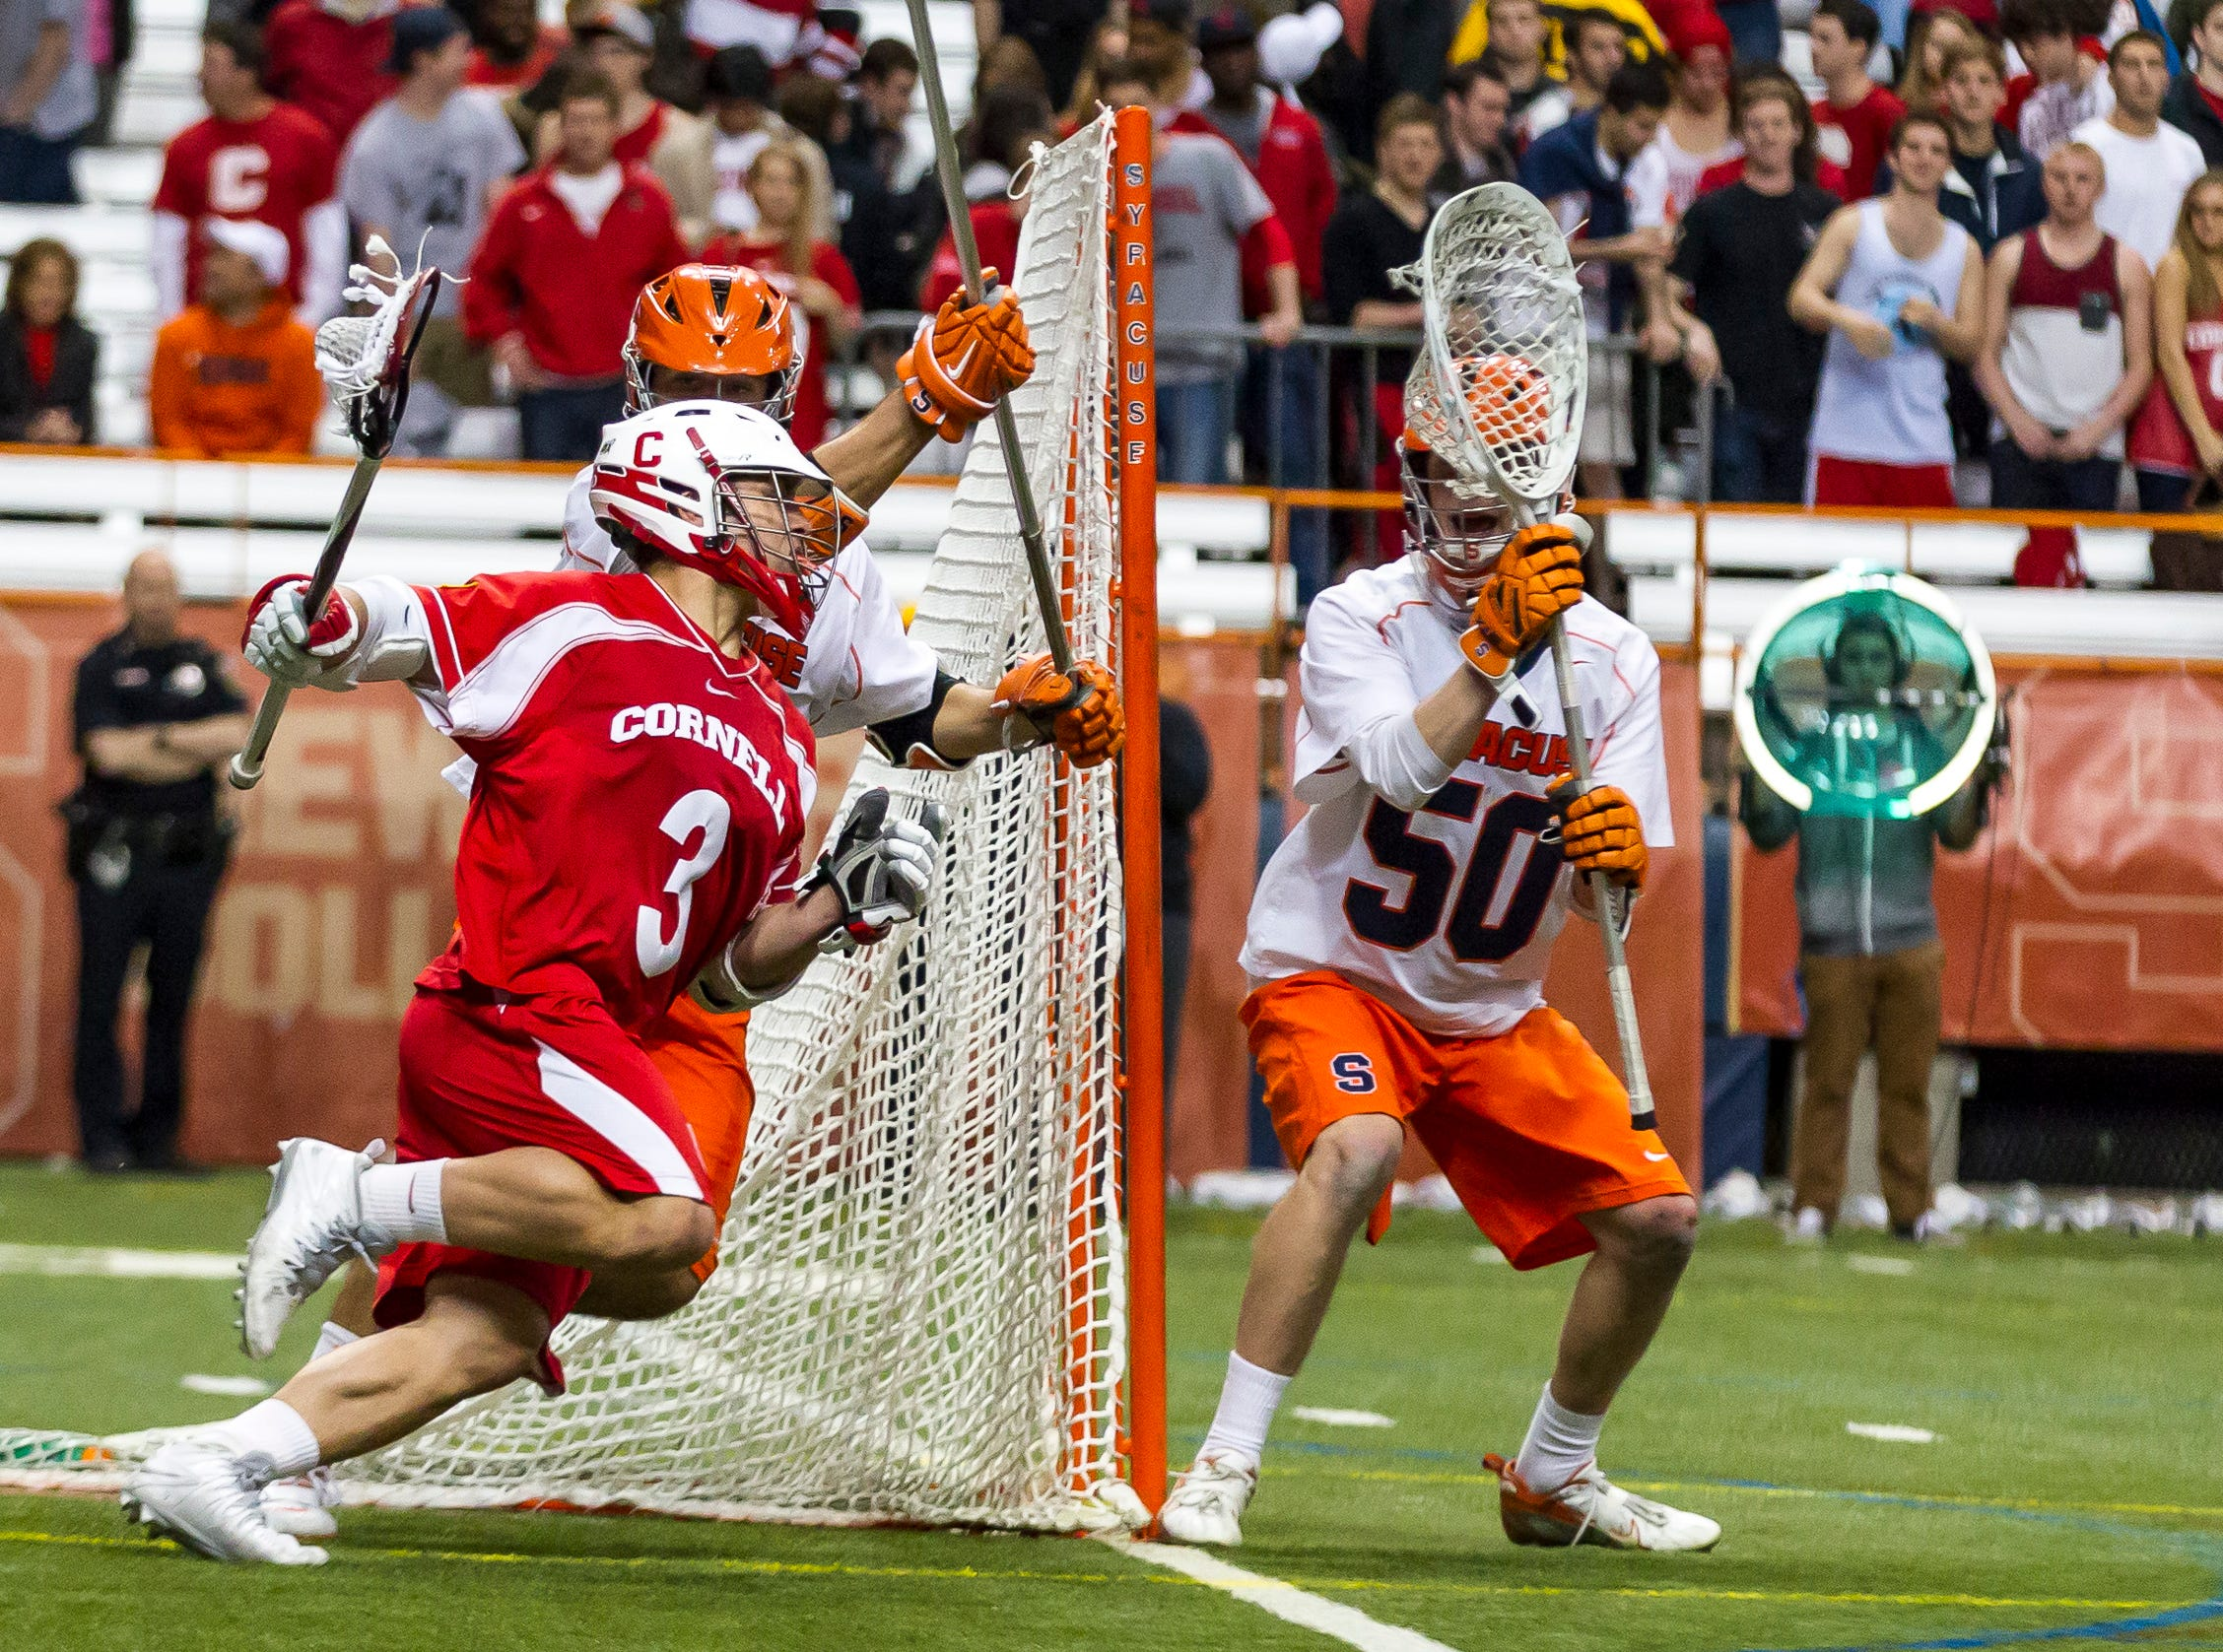 2013: Cornell vs Syracuse University in college mens lacrosse Wednesday night at Syracuse's Carrier Dome.